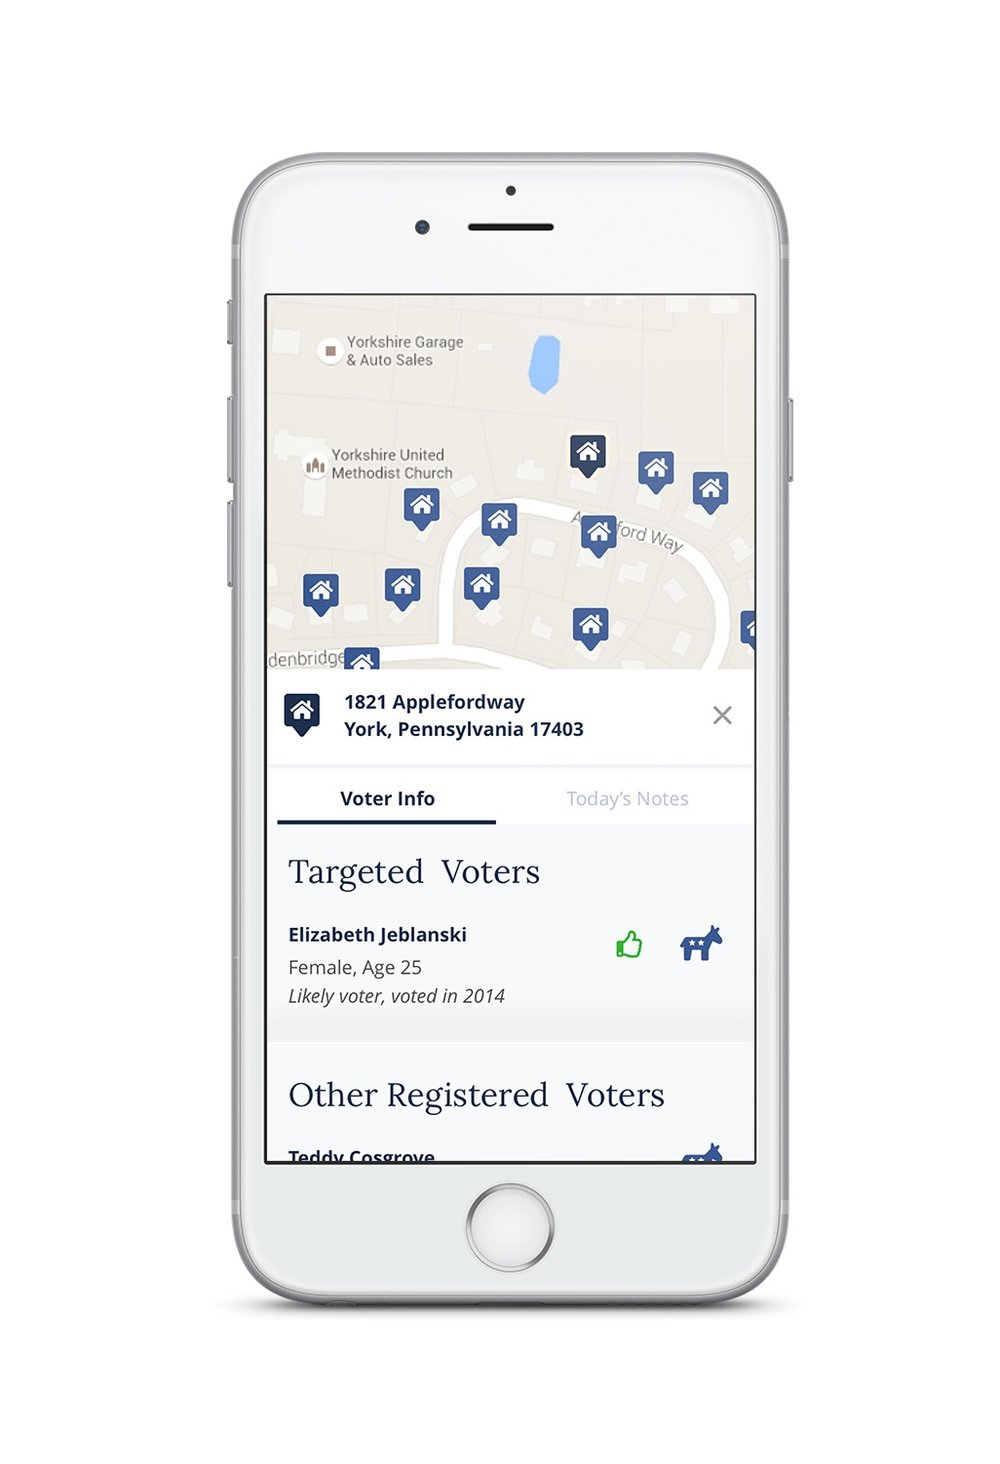 - Research shows that the key to your electoral success is through personal conversations with voters. Knocking doors and calling voters is easy with the Victory Guide app. Our technology does the hard work, like figuring out which voters you should target and mapping them into an easy to use app. Automatically generated walk sheets mean that you don't have to sit in front of a computer cutting turf; just open the app and start knocking in the neighborhood of your choice. Within the app, you'll be able to see key demographic information about each voter and take notes about your conversations.